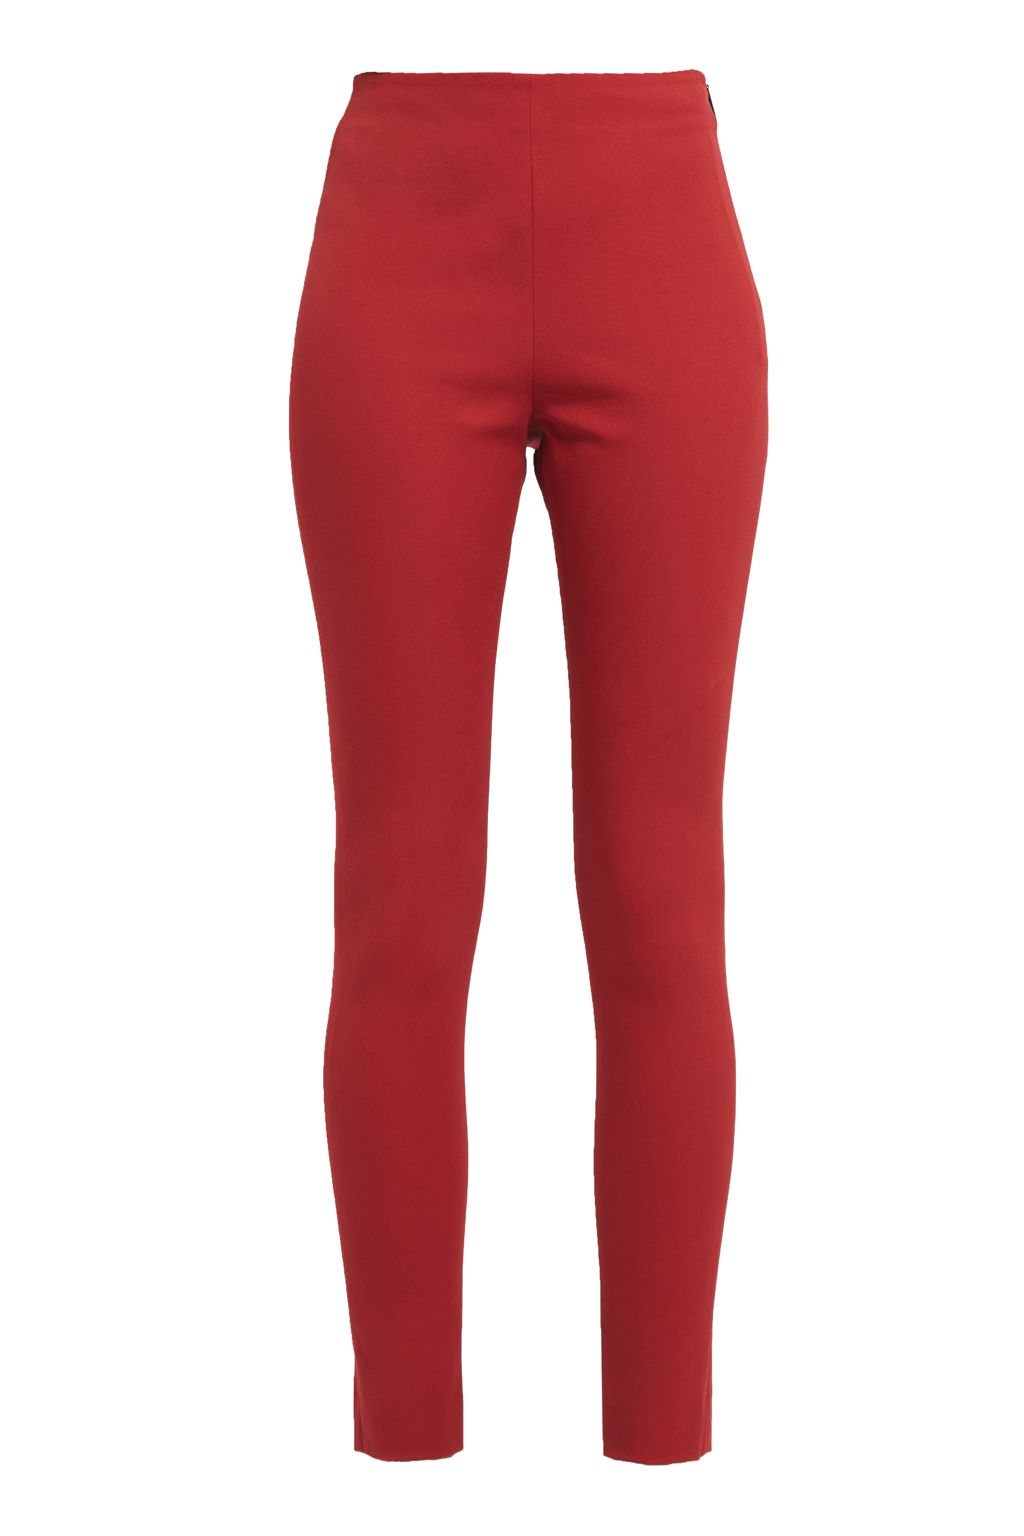 French Connection Street Twill Skinny Trousers, Red